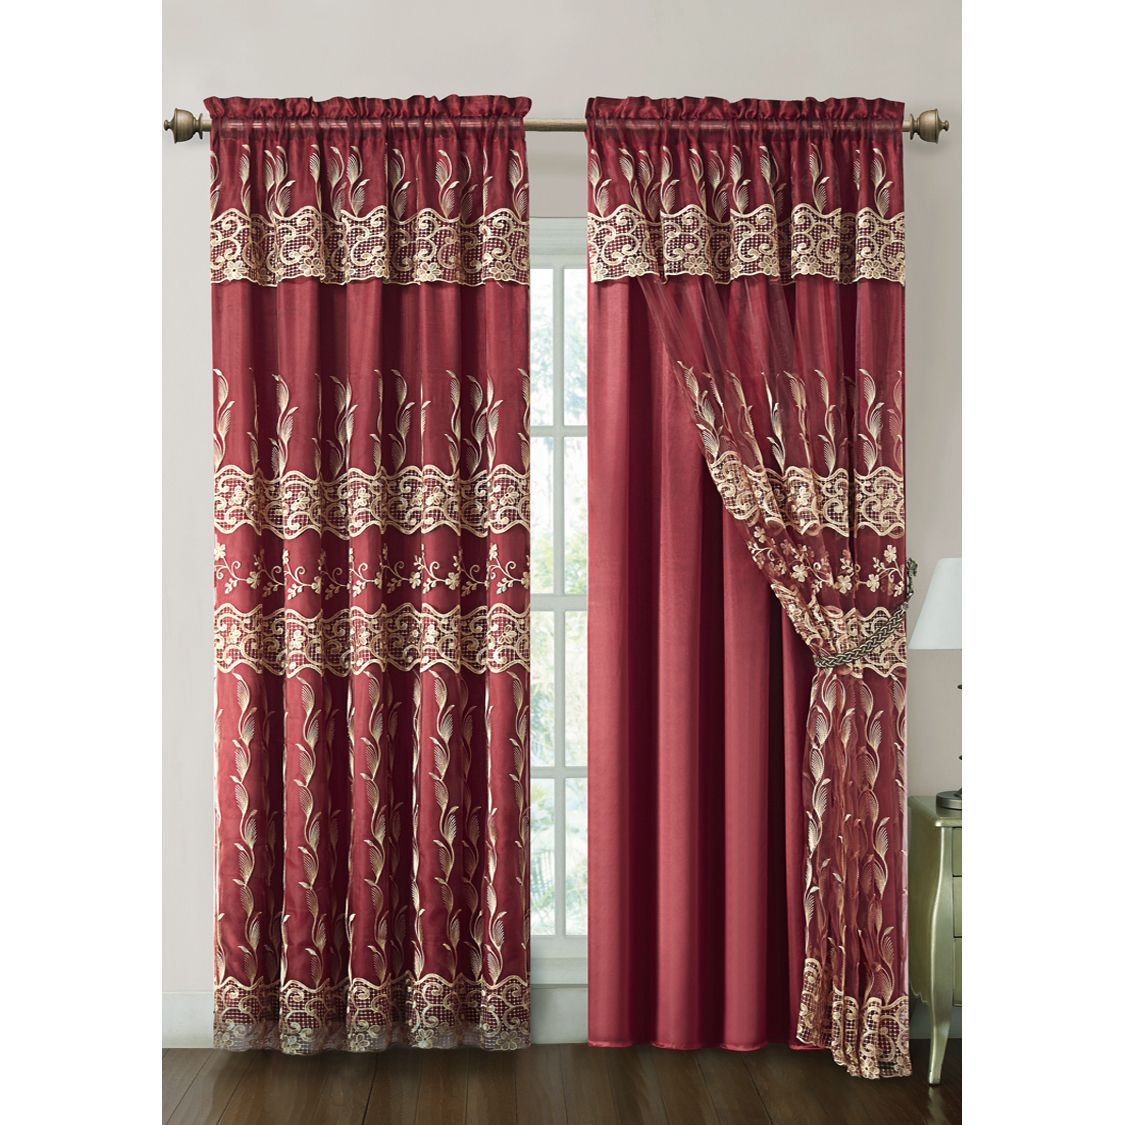 blackout designers grommet sheer full be for inch en the used interior collection curtain vivan panels textured design products drapes curtains rugs rod rt textiles x panel gb and size beautiful yellow cute image on atqwigawm ready acadia anise made pair window